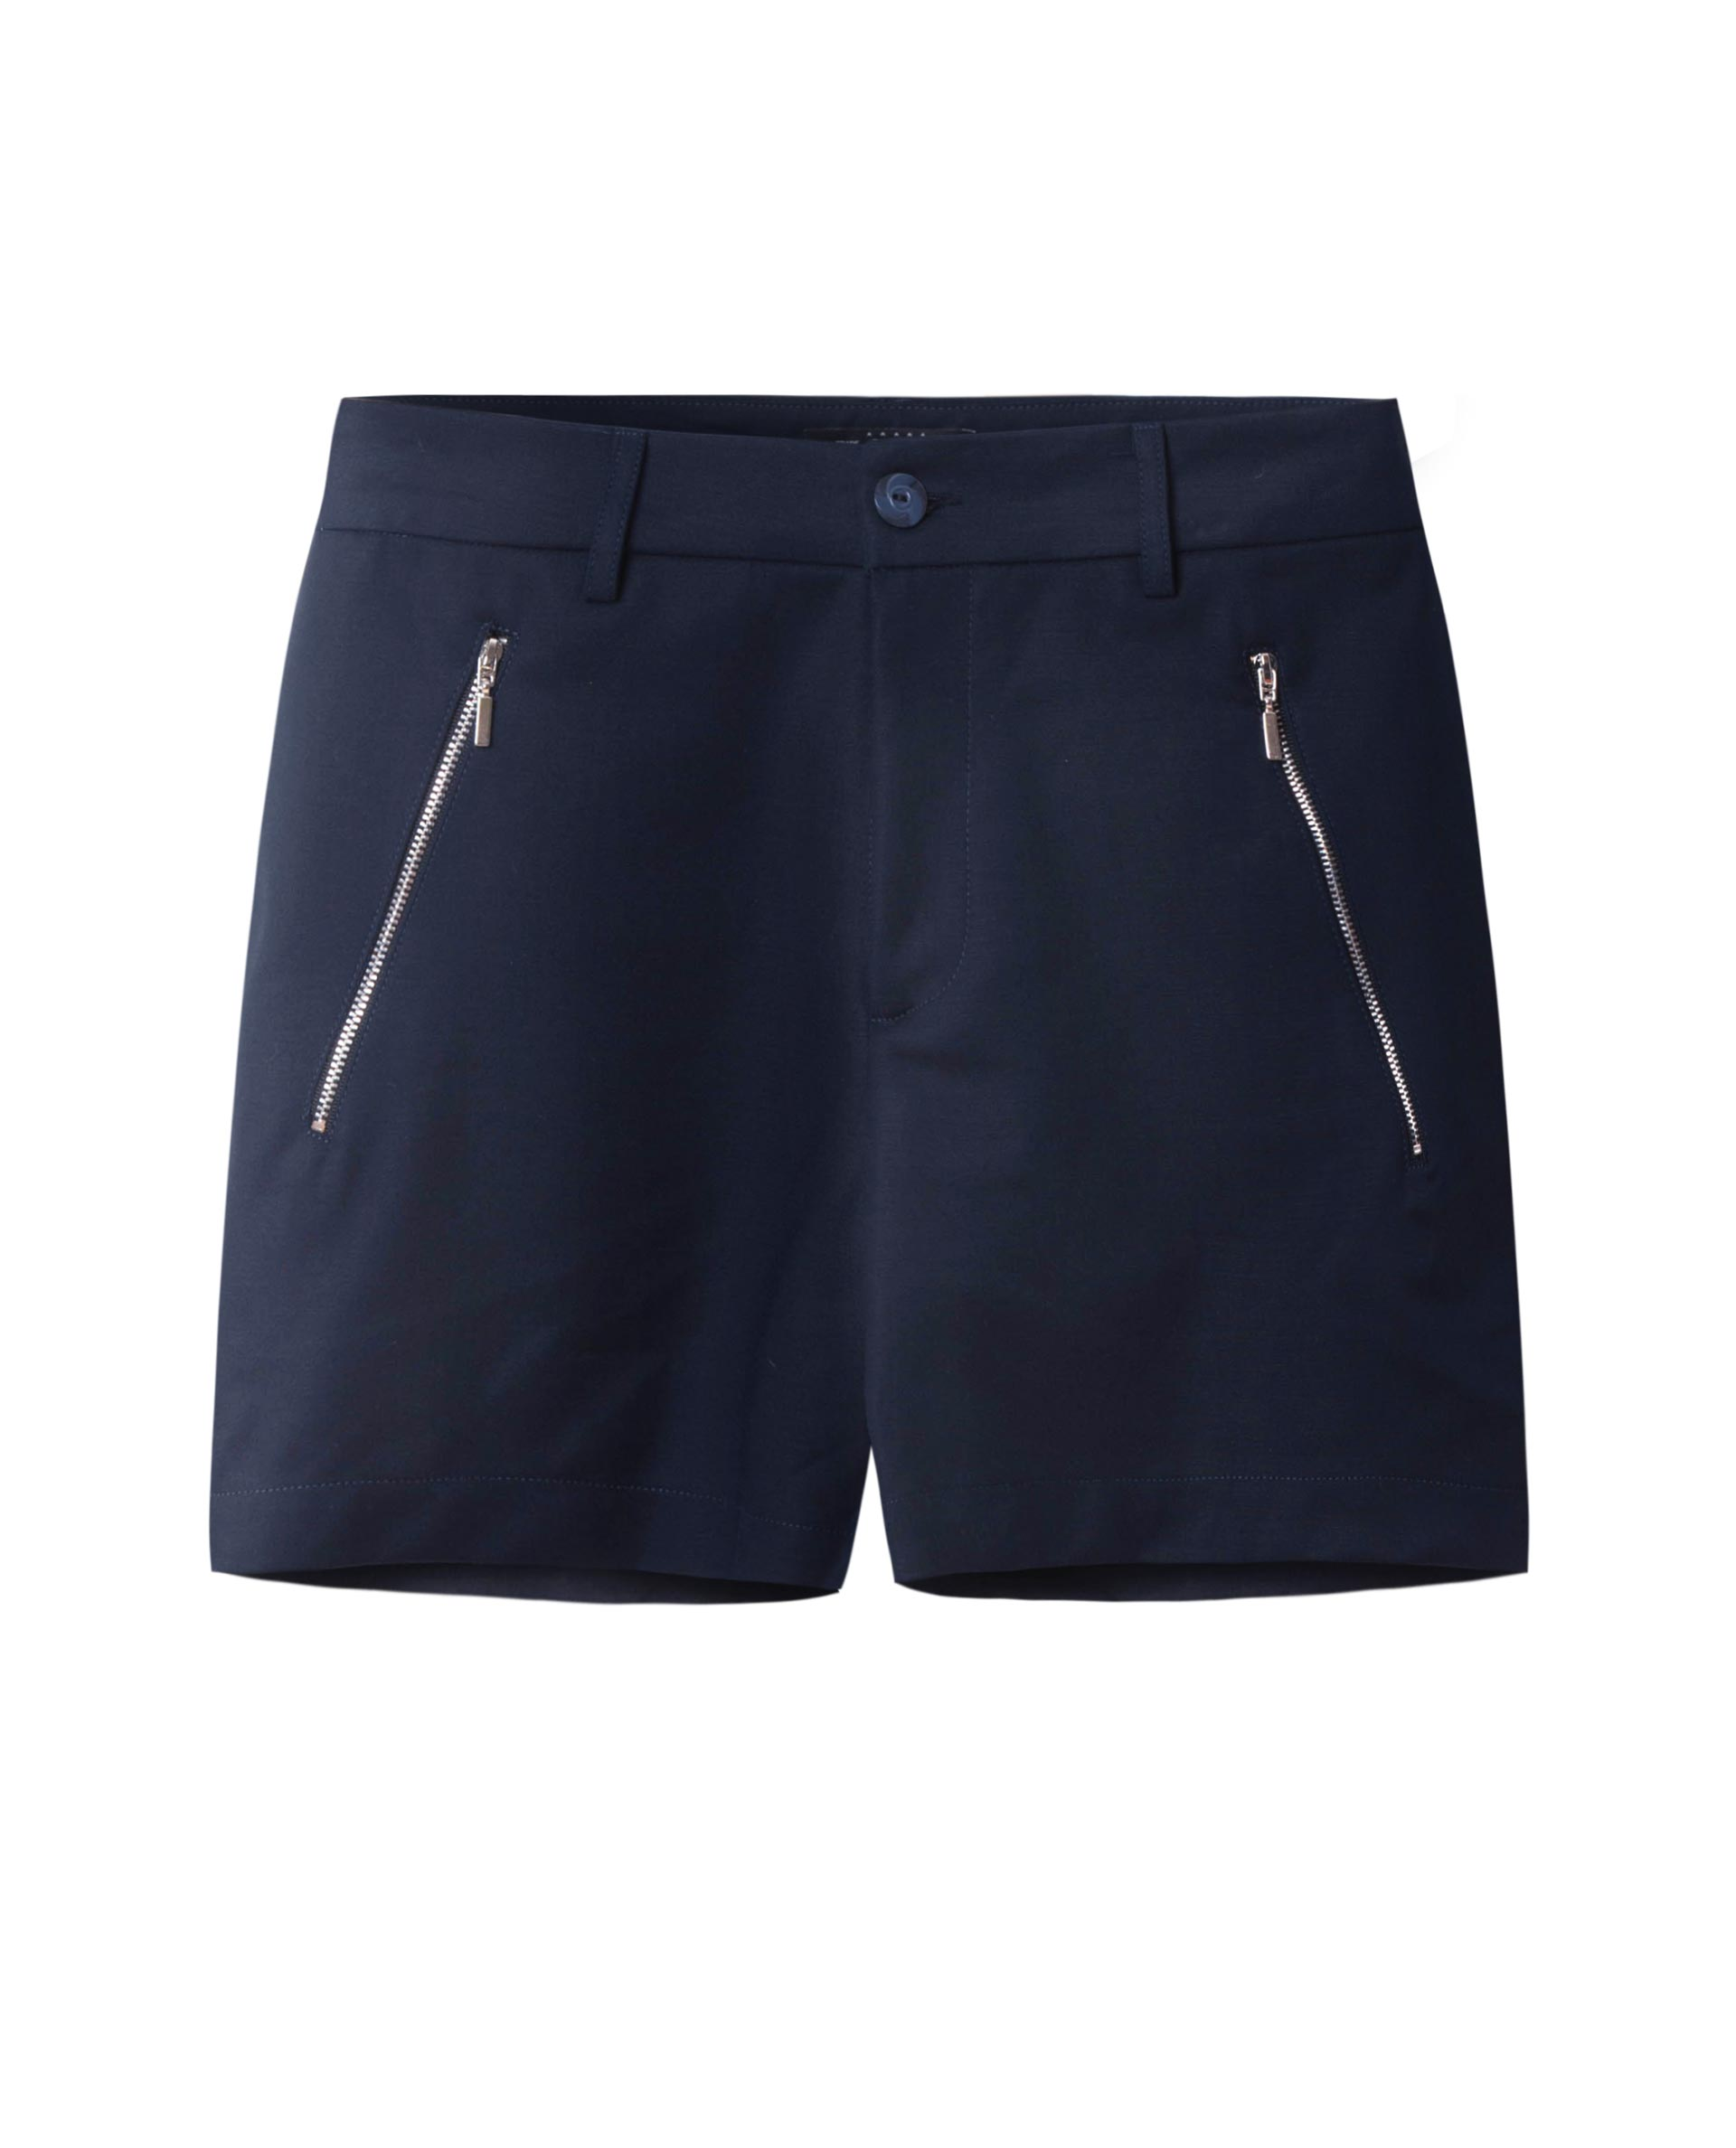 SHORTS WITH ZIP (BLACK)